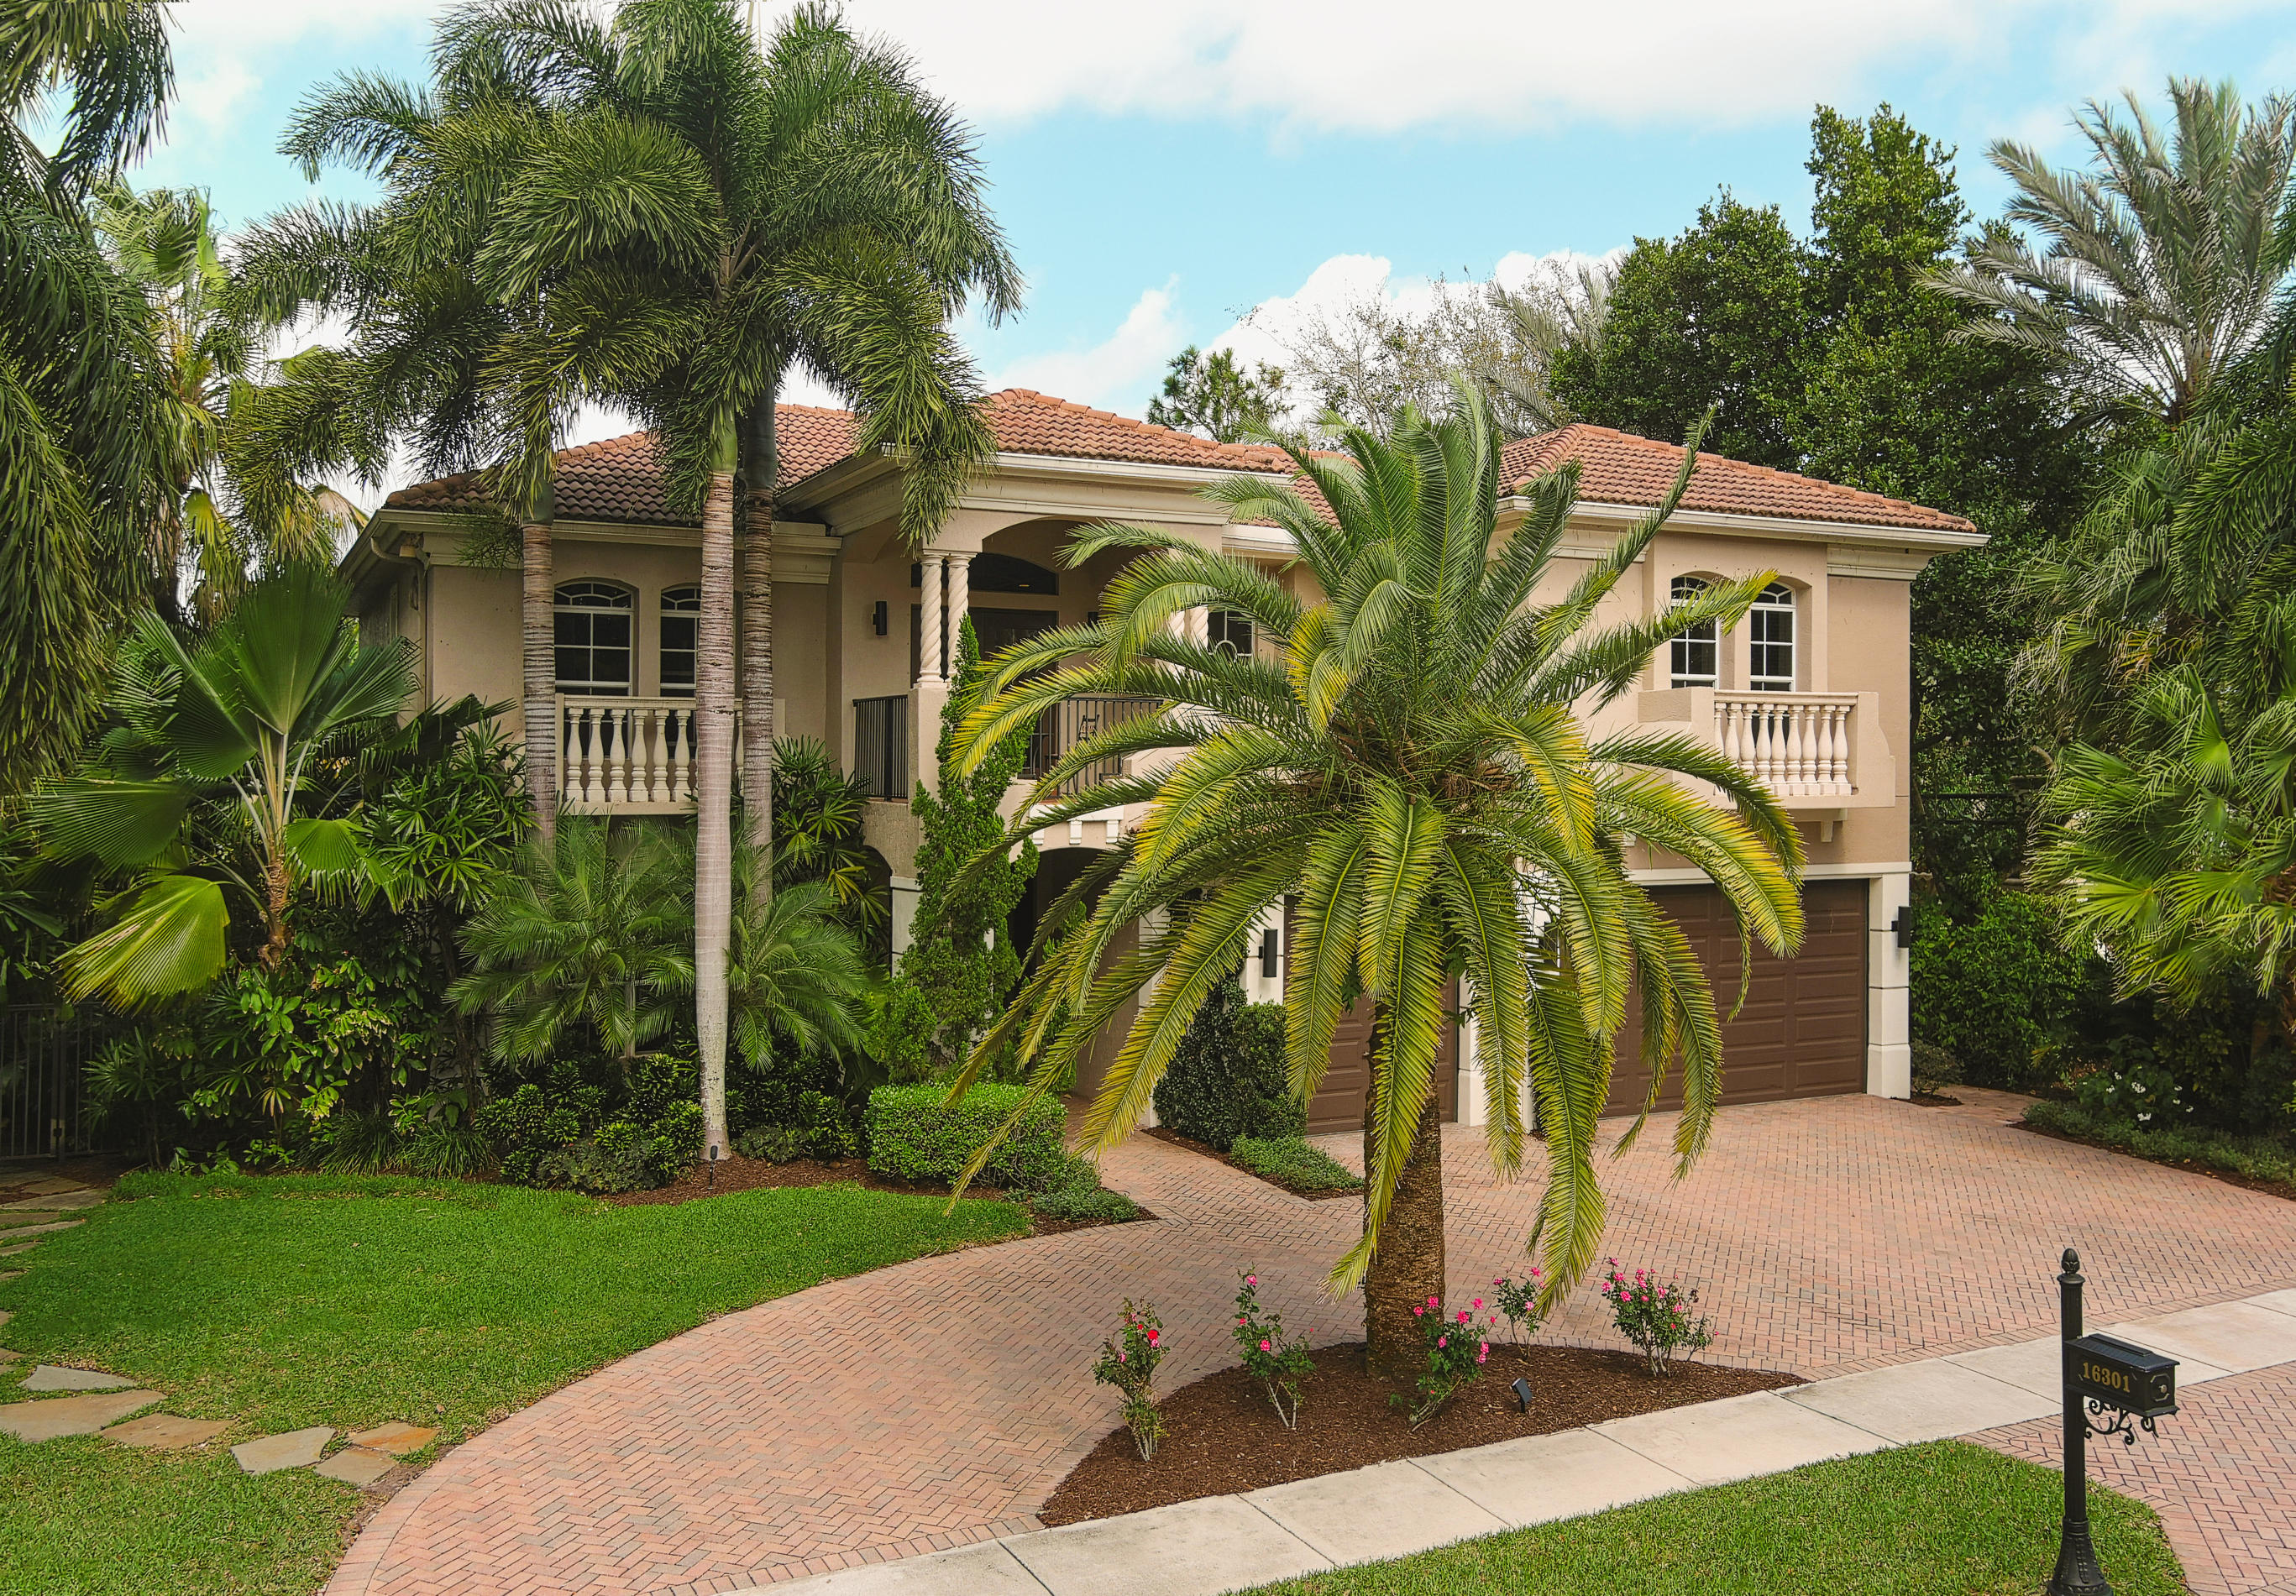 16301 Andalucia Lane, Delray Beach, Florida 33446, 5 Bedrooms Bedrooms, ,5.1 BathroomsBathrooms,Single Family Detached,For Sale,Andalucia,RX-10694730